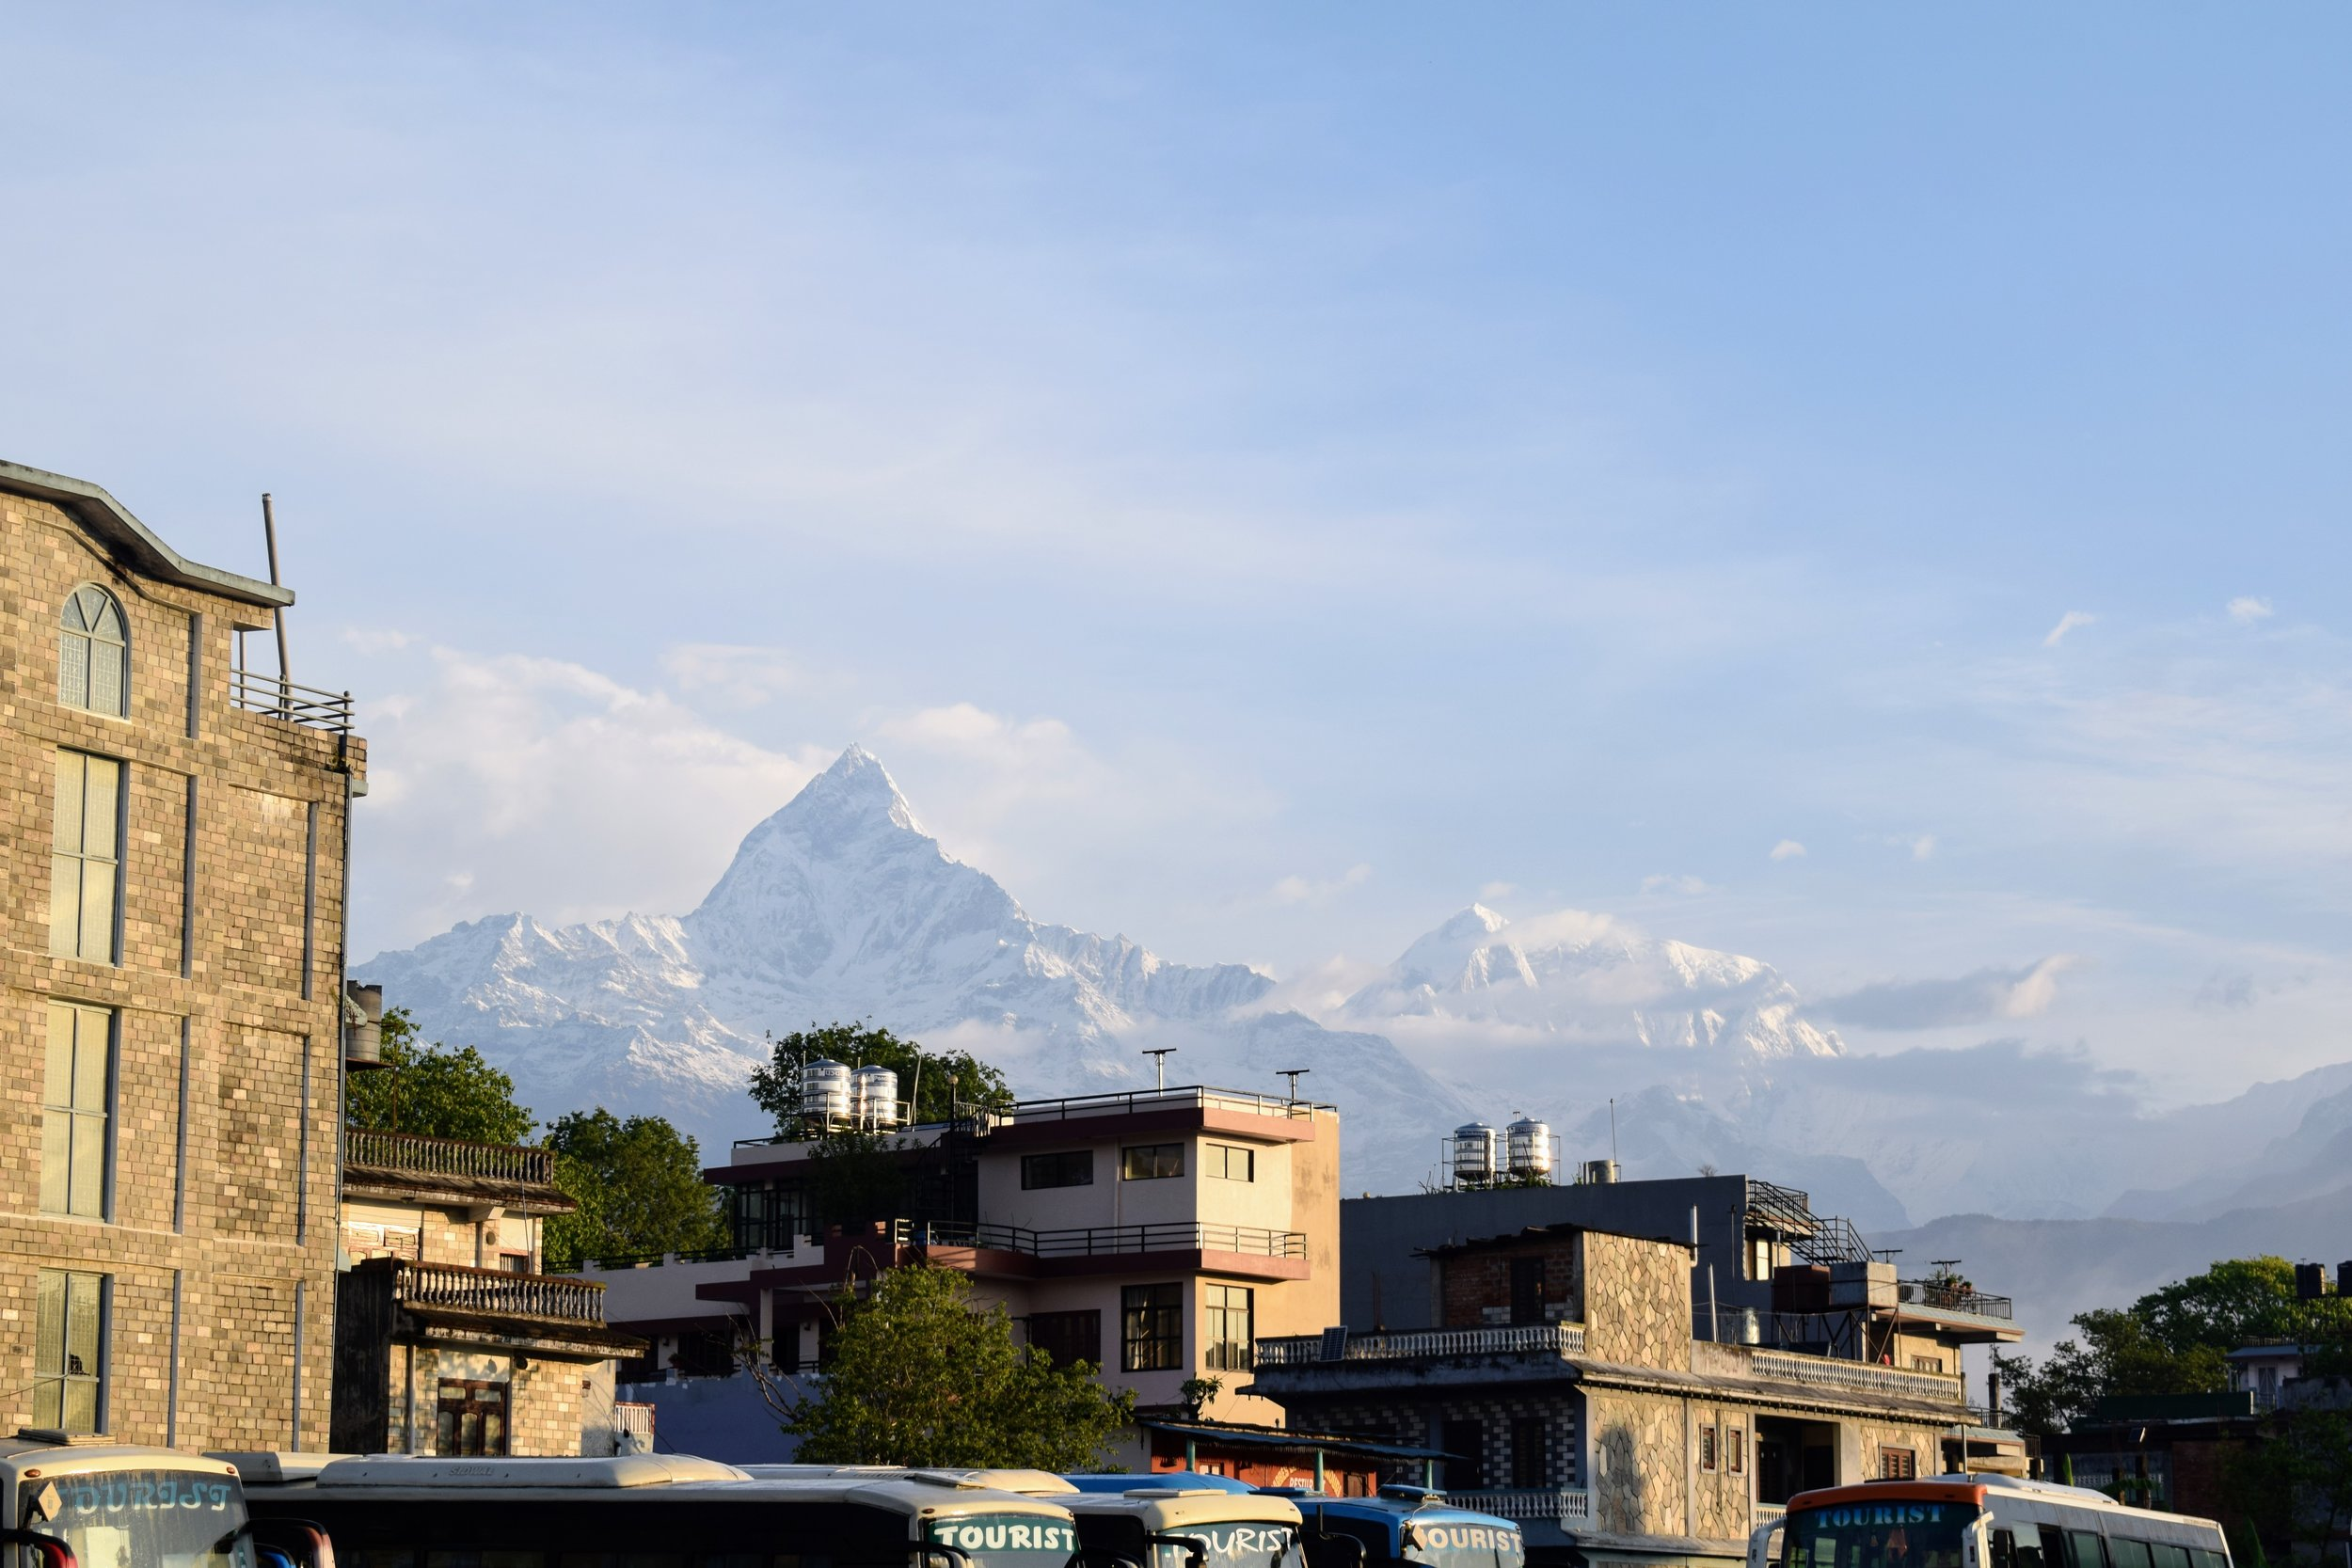 macchapucchre above the bus station in pokhara